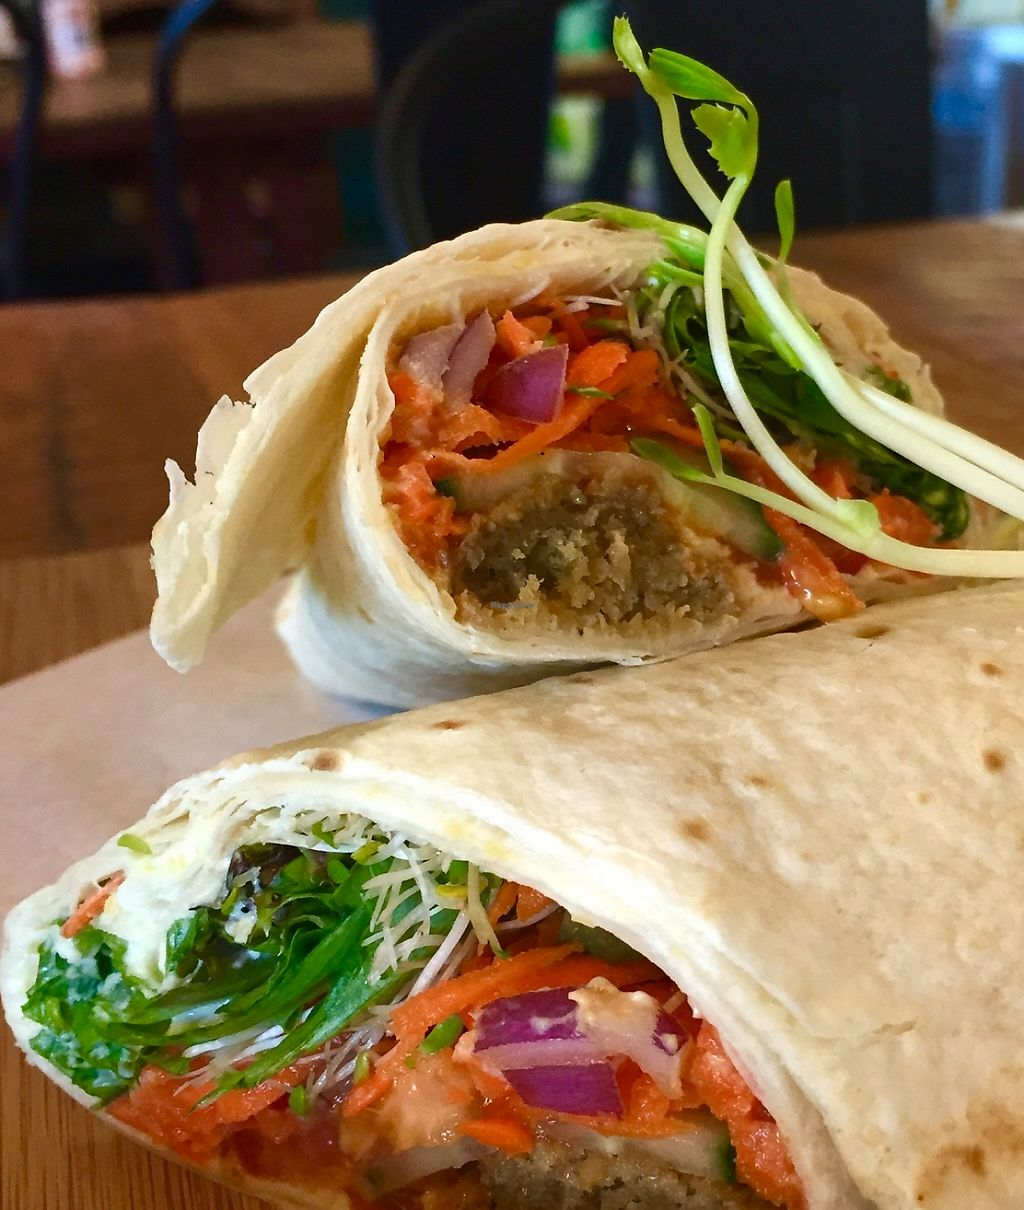 """Photo of The Dharma Hub  by <a href=""""/members/profile/karlaess"""">karlaess</a> <br/>Falafel wrap <br/> December 17, 2015  - <a href='/contact/abuse/image/64907/256966'>Report</a>"""